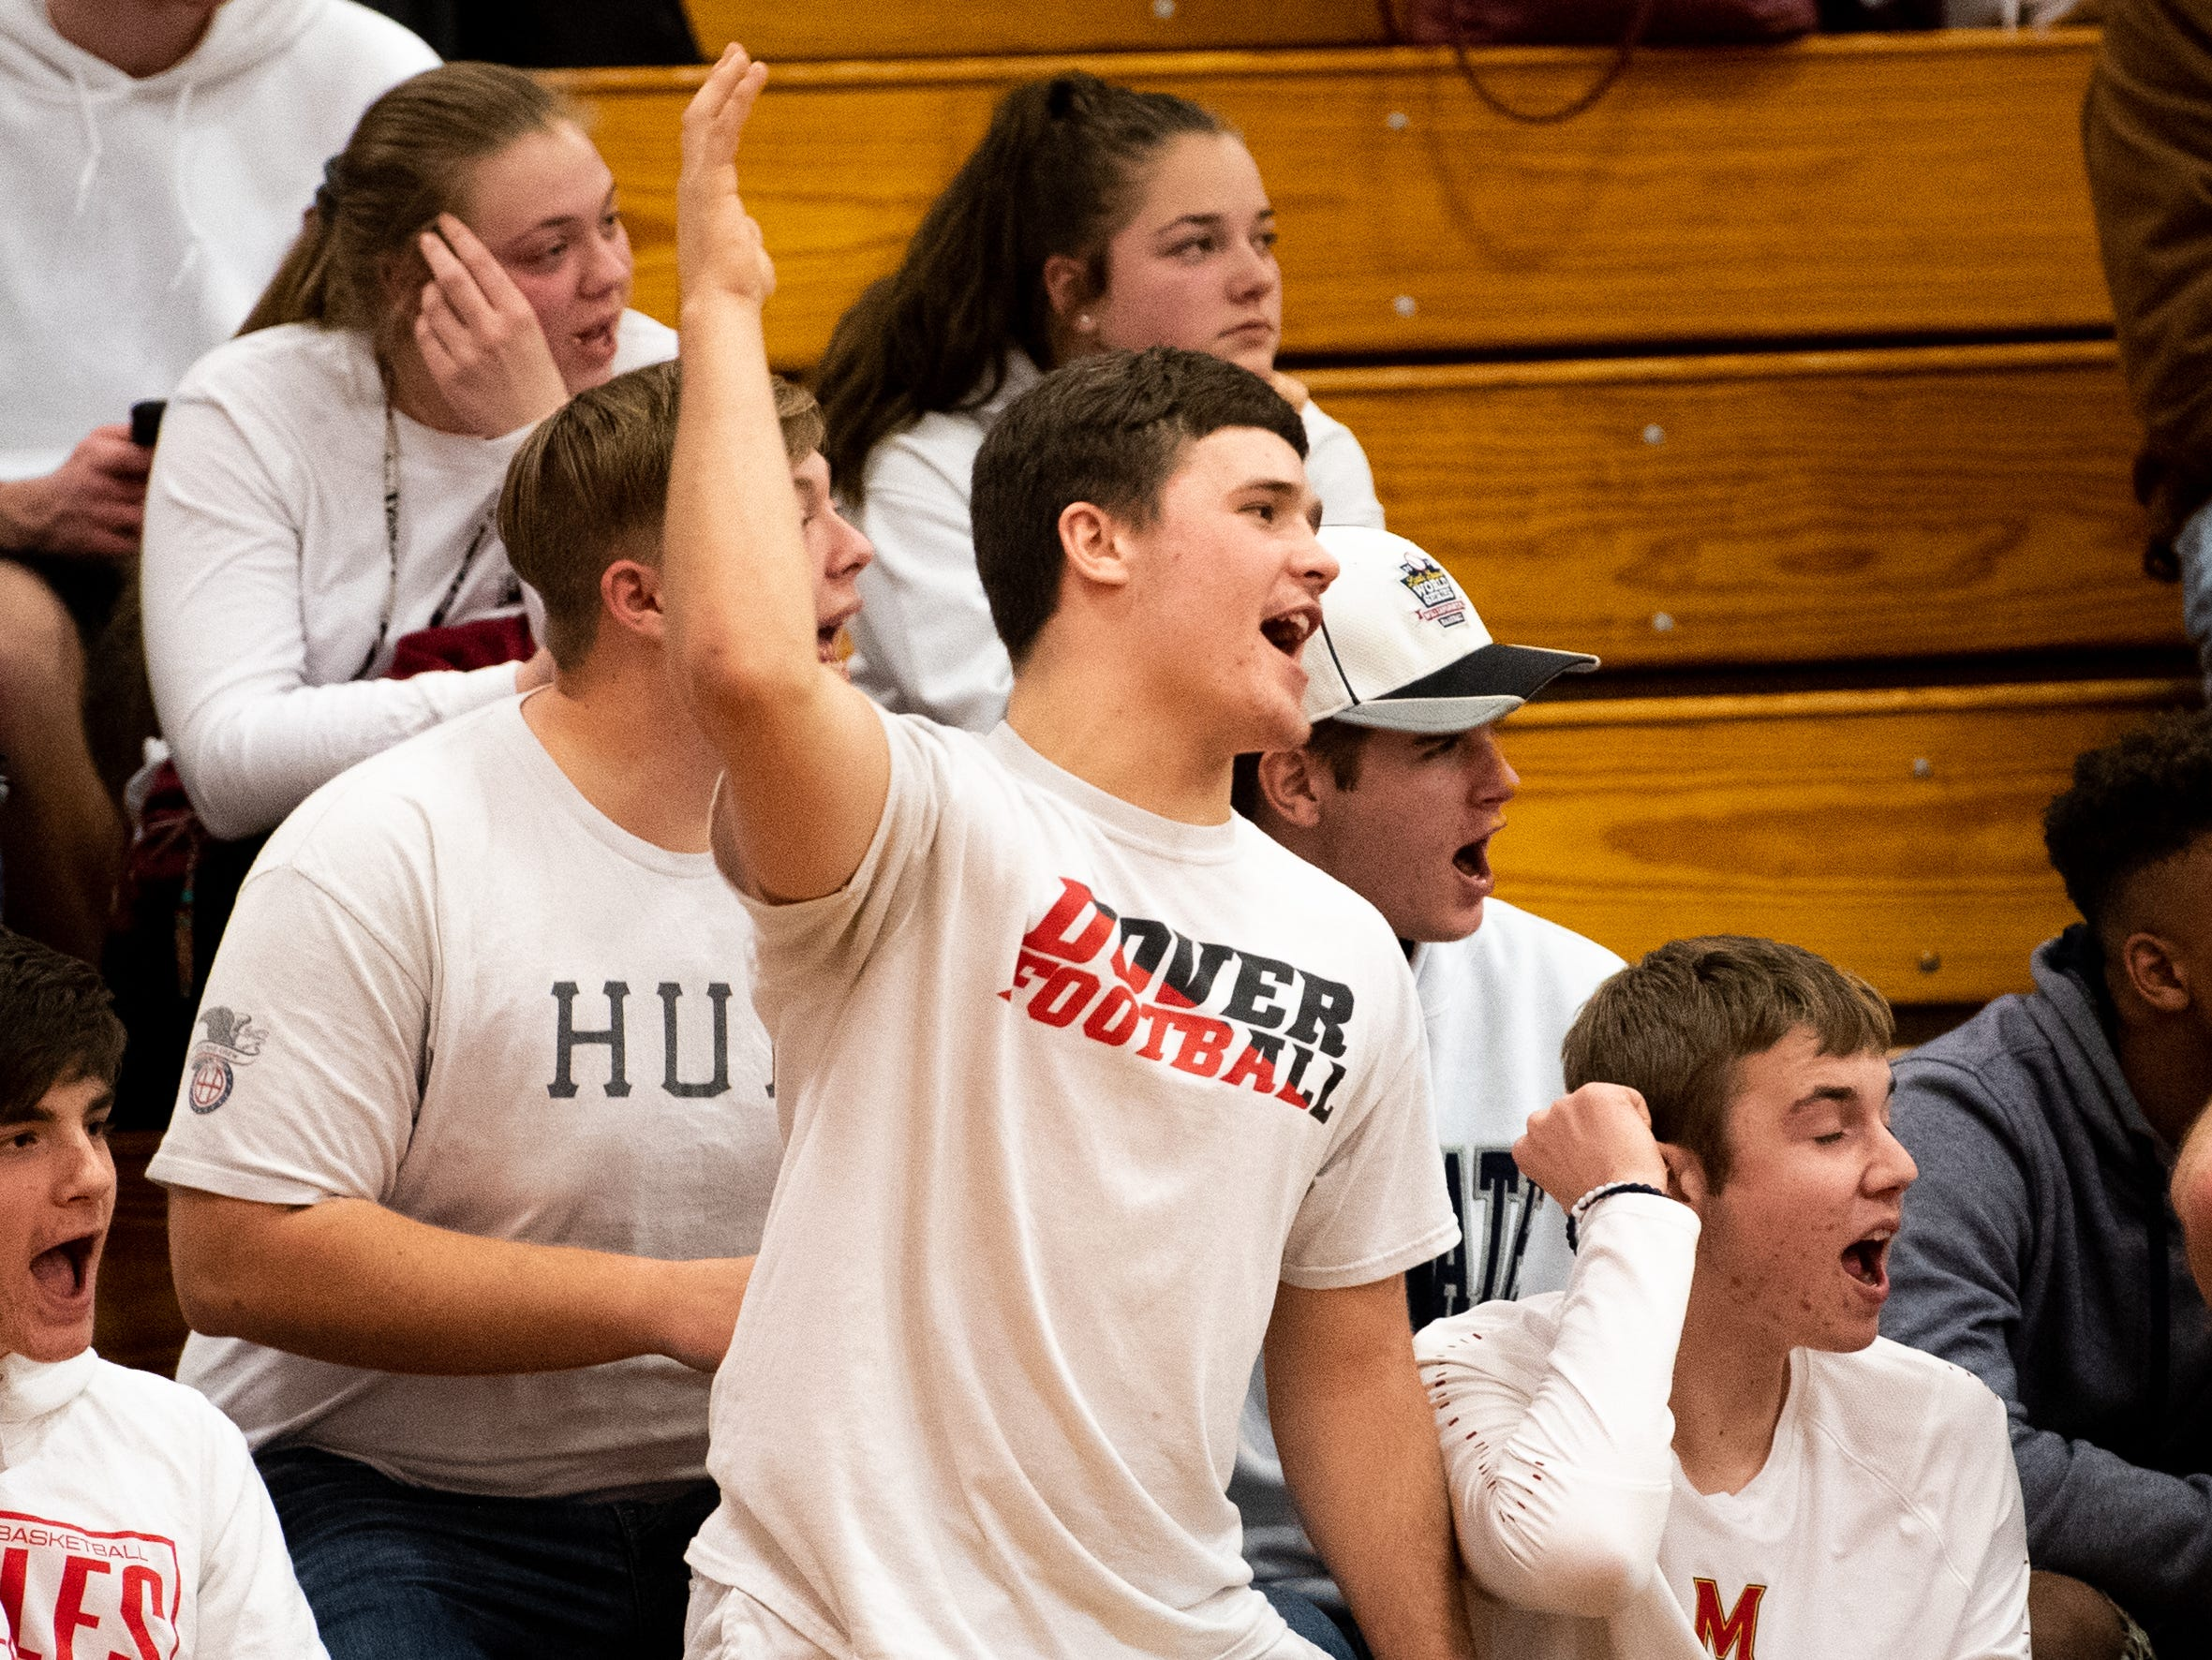 Dover's student section cheers on their team during the boys' basketball game against Susquehannock, December 18, 2018. The Eagles defeated the Warriors 69-61.